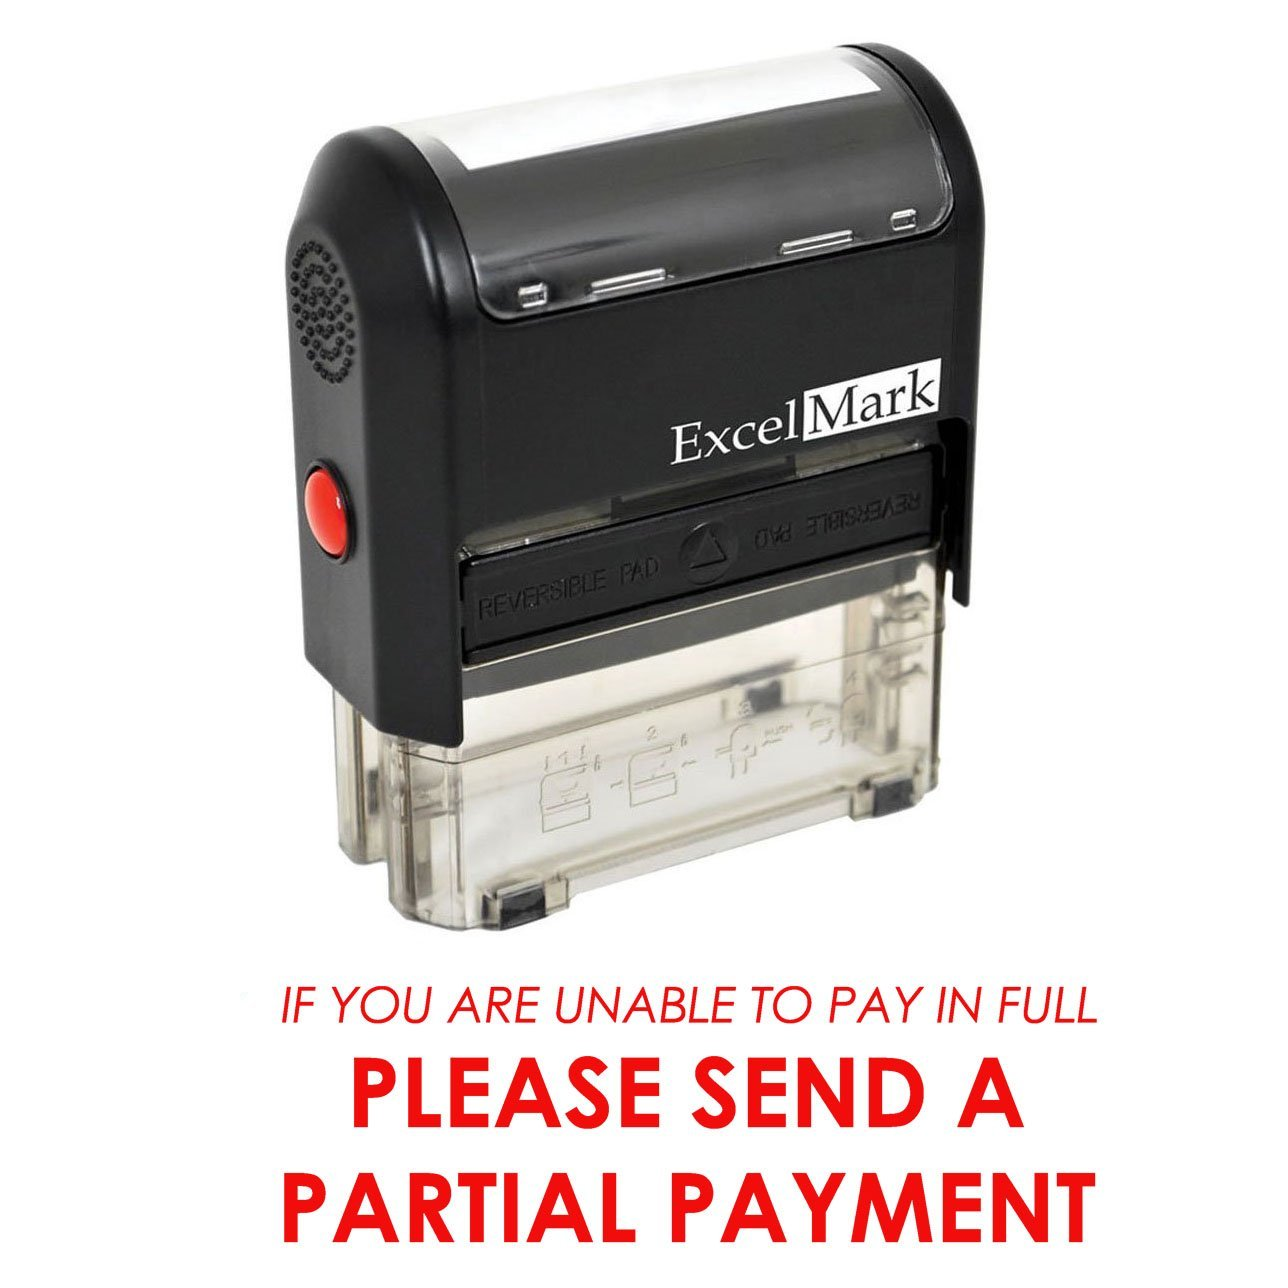 PLEASE SEND PARTIAL PAYMENT - Self Inking Bill Collection Stamp in Red Ink